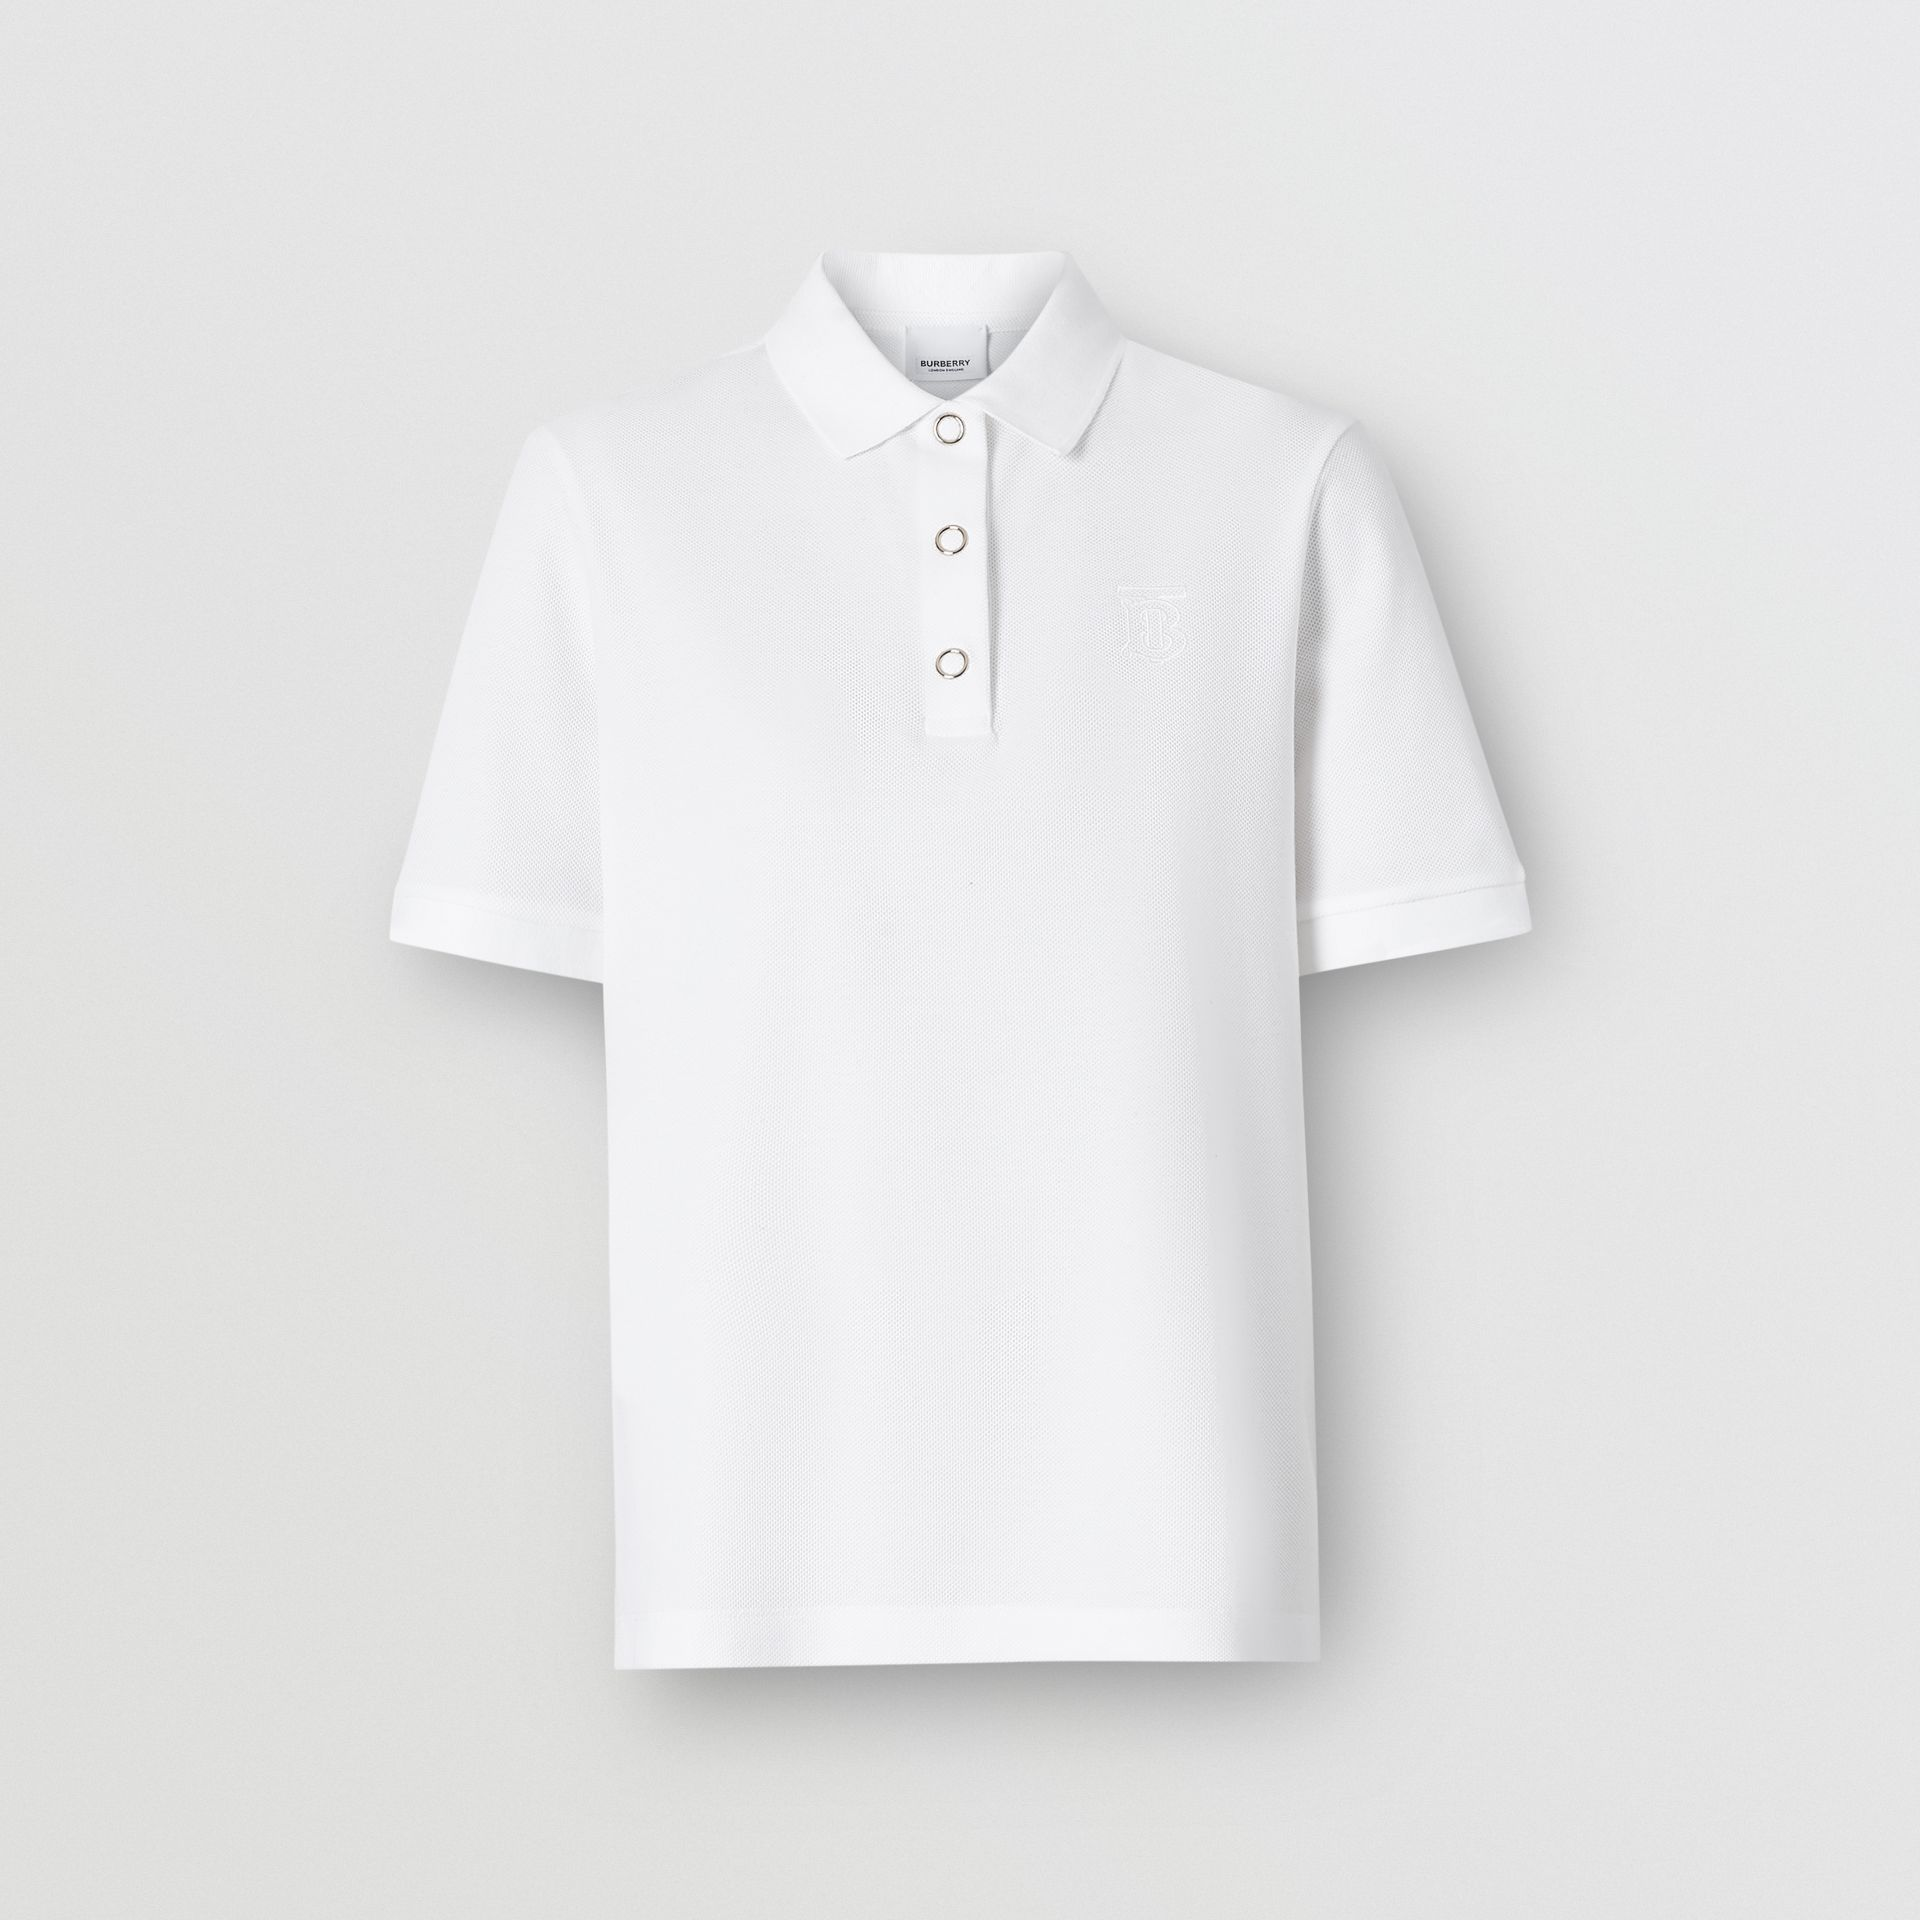 Monogram Motif Cotton Piqué Polo Shirt in White - Women | Burberry United Kingdom - gallery image 3